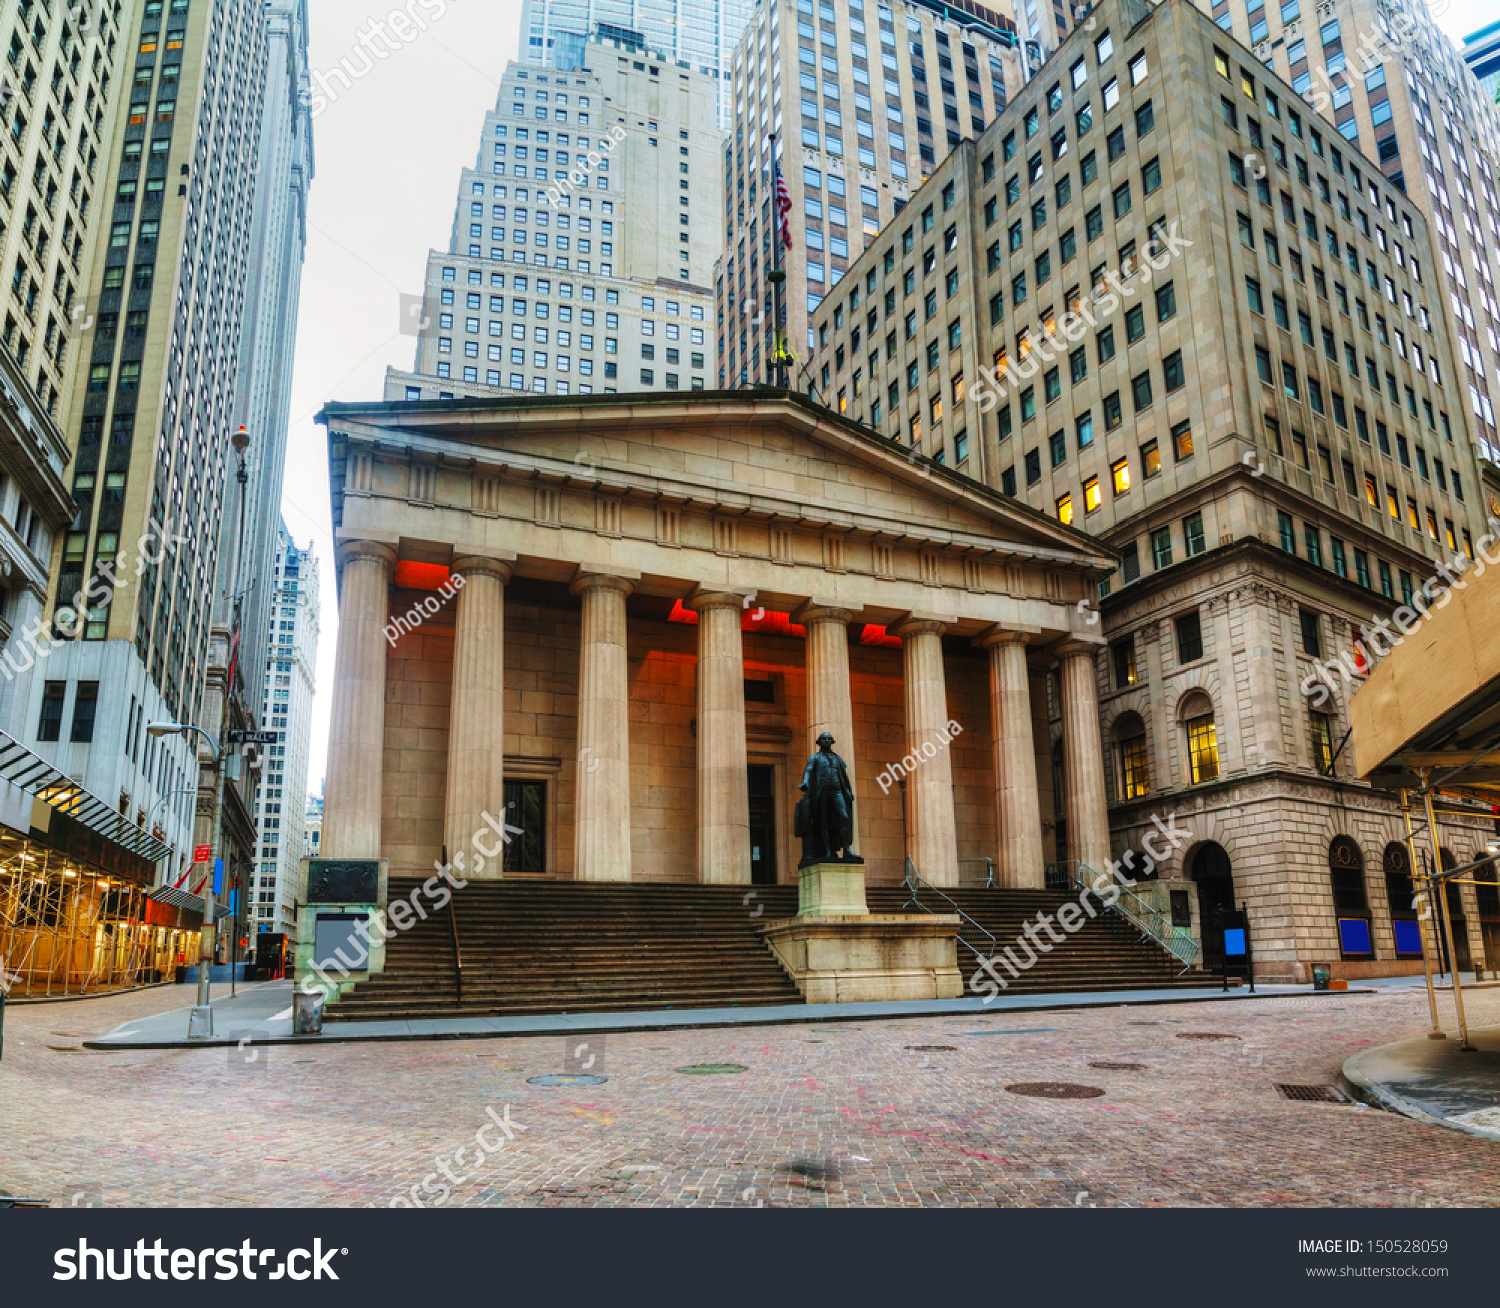 Federal Hall National Memorial On Wall Stock Photo ...